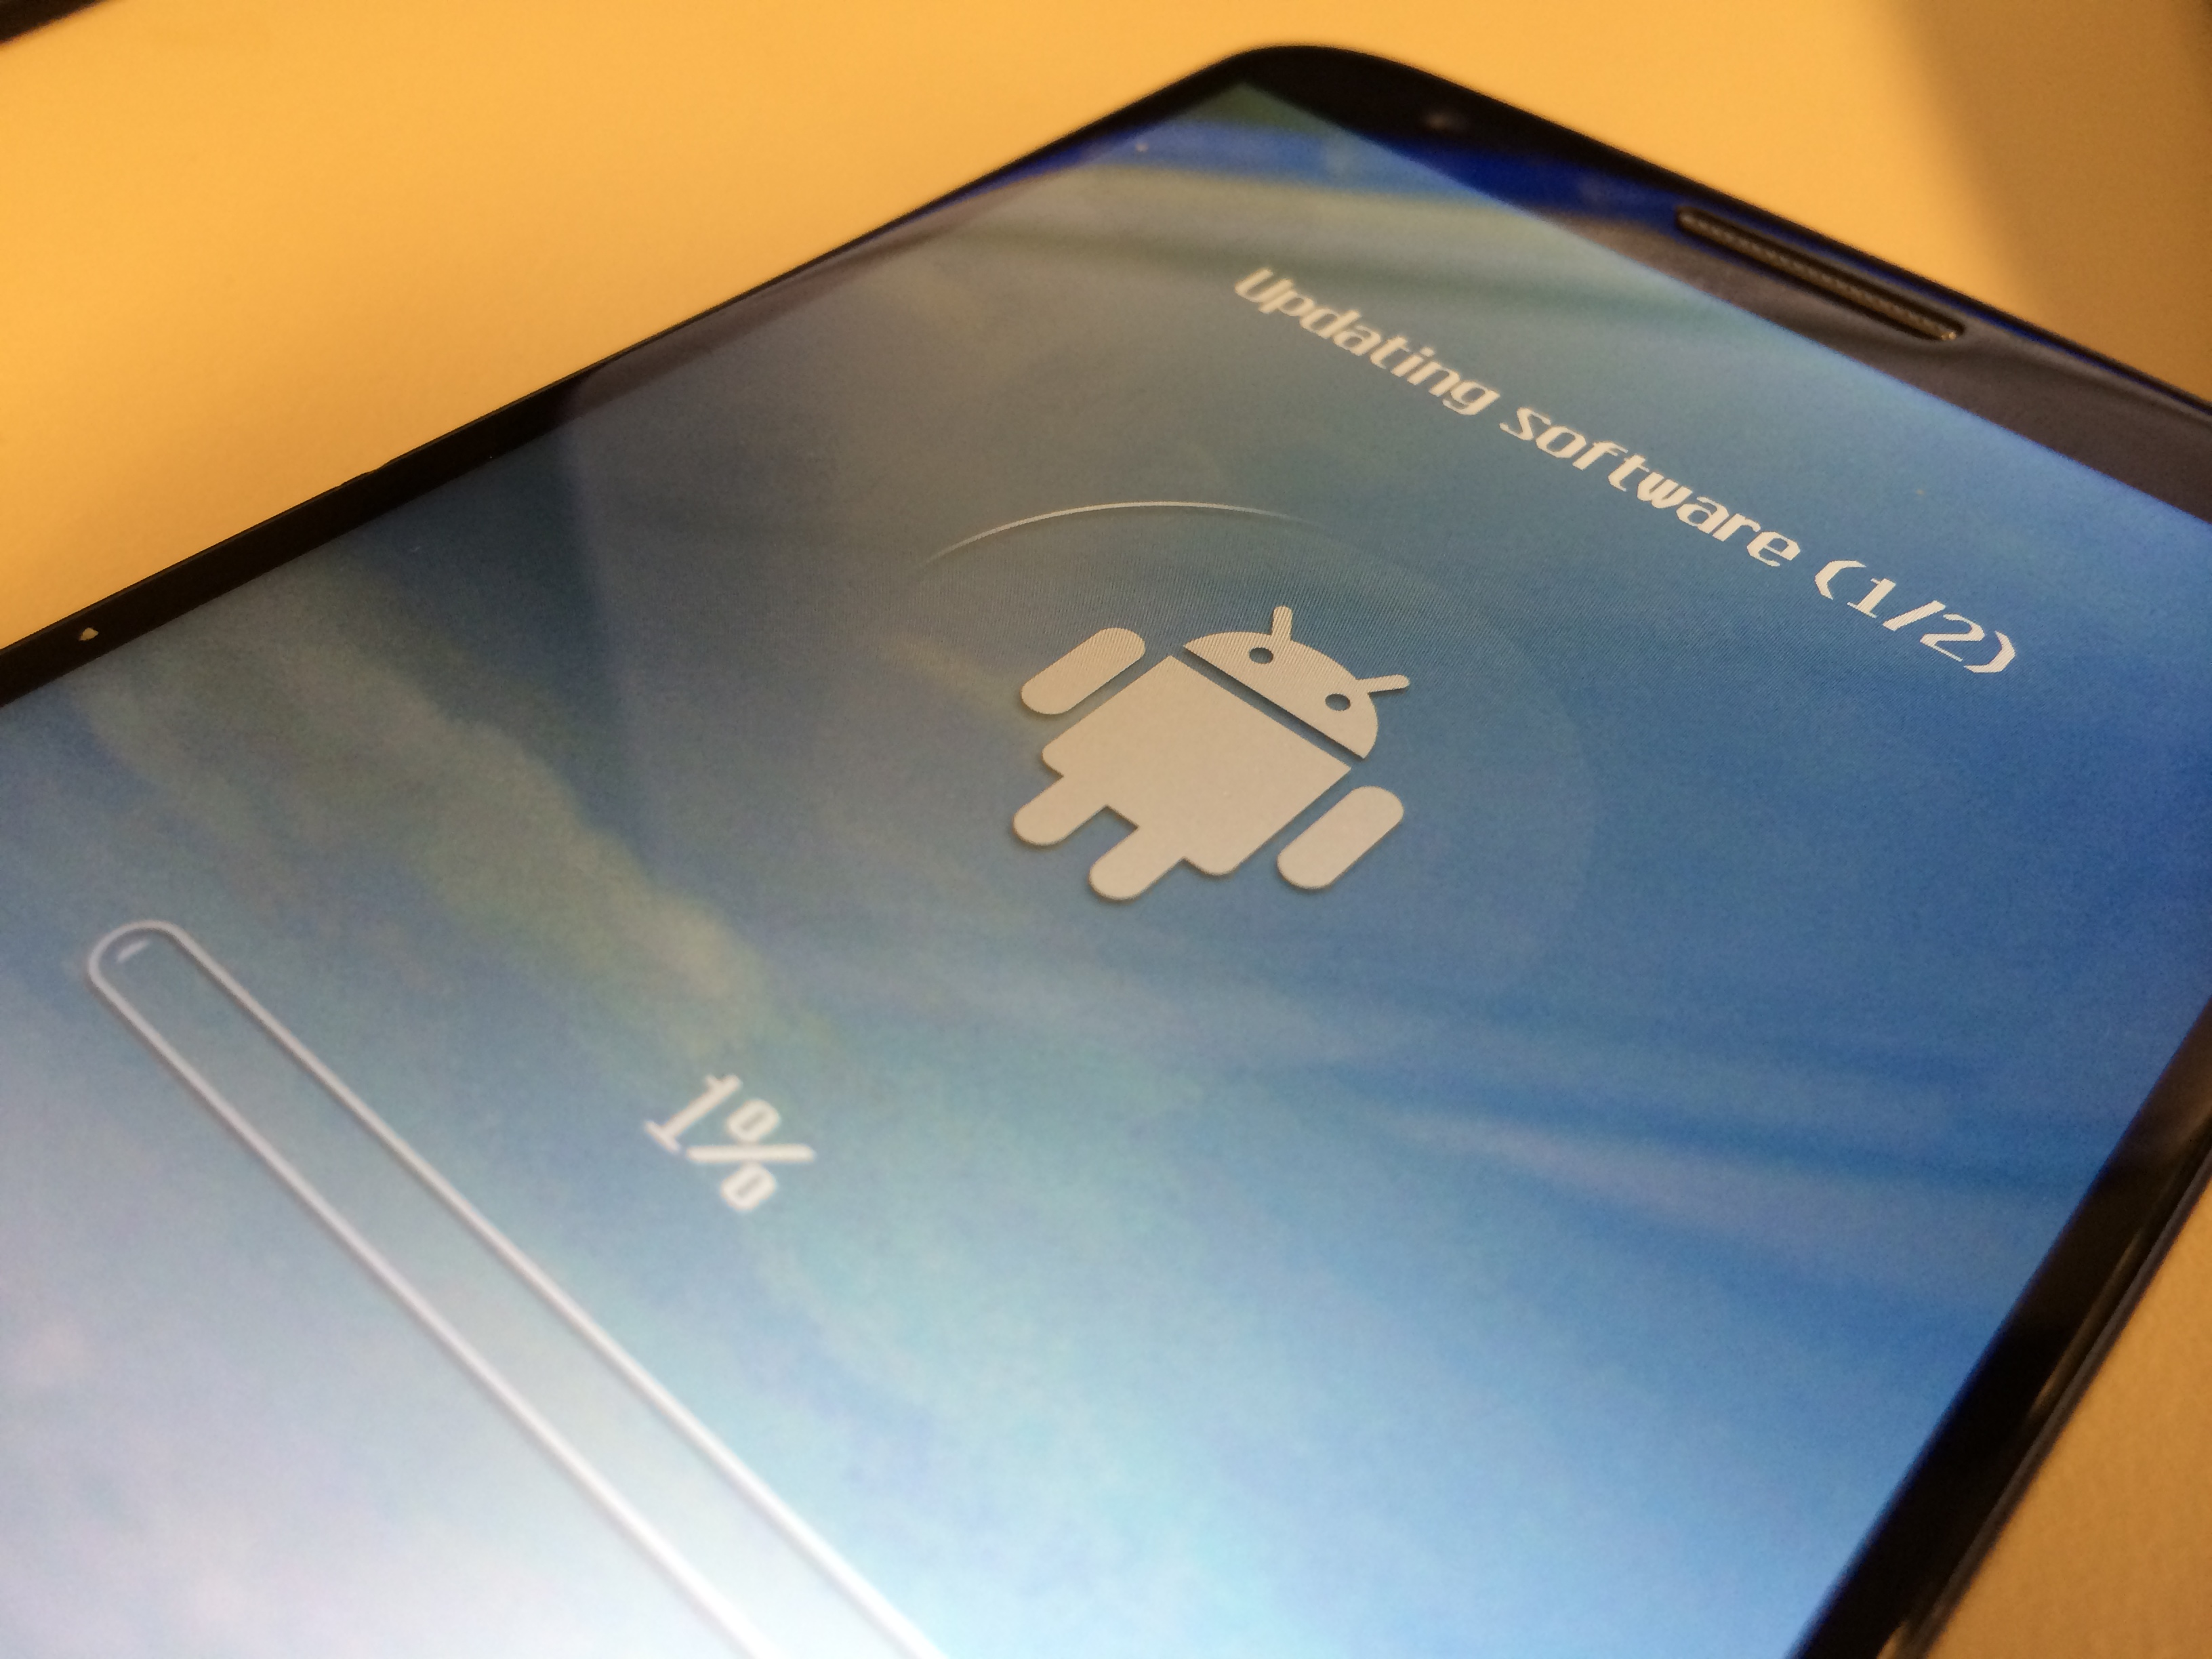 LG G2 Receives Android Kitkat Update